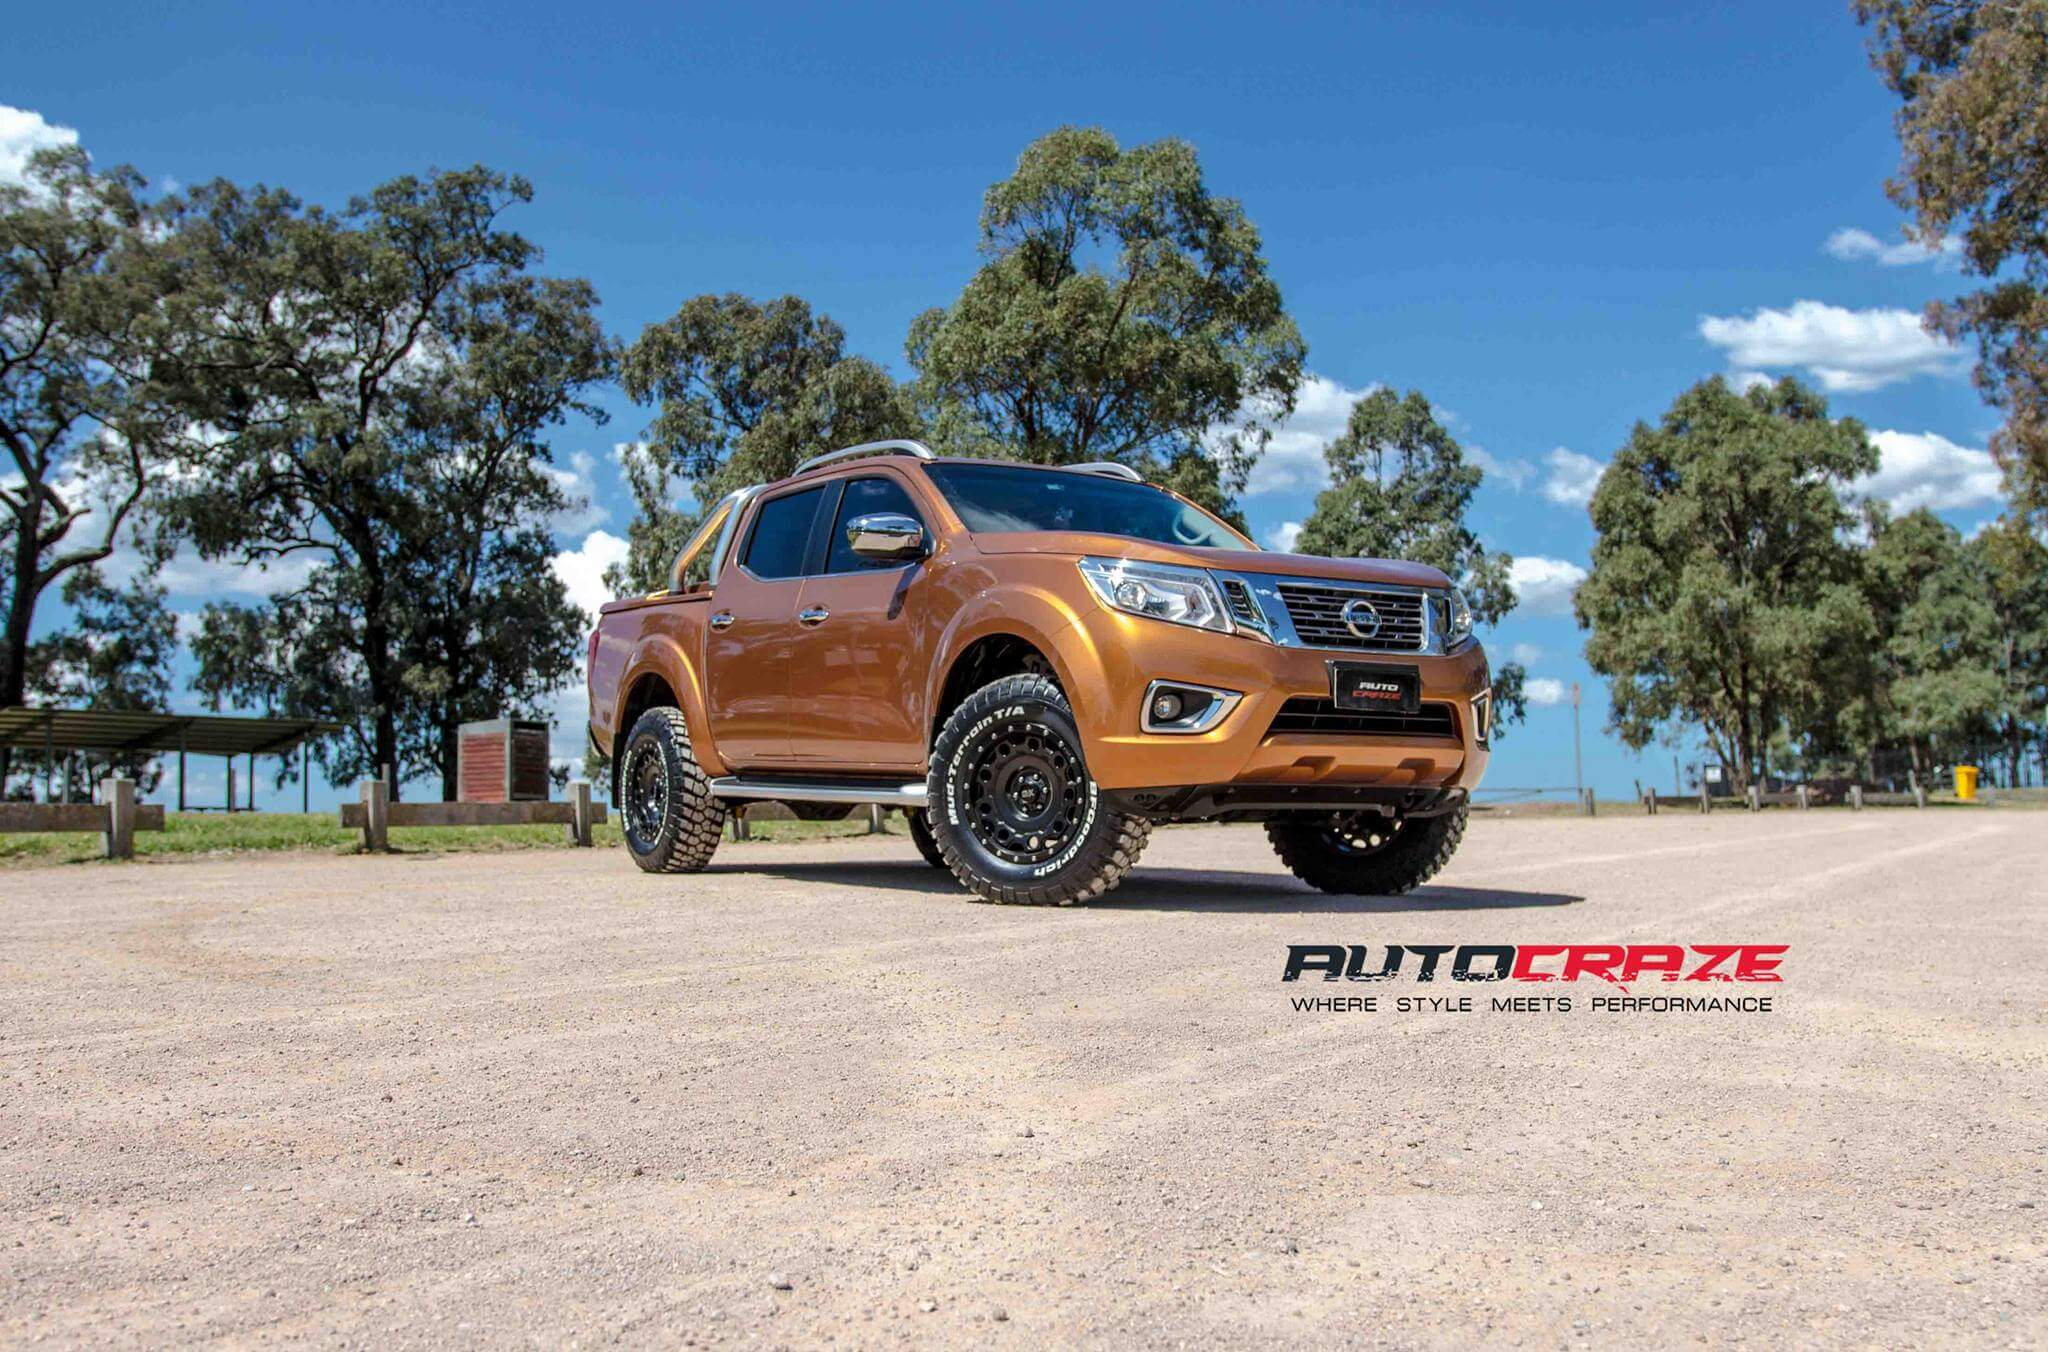 D22 Navara Rims | Nissan Navara D22 4x4 Wheels And Tyres